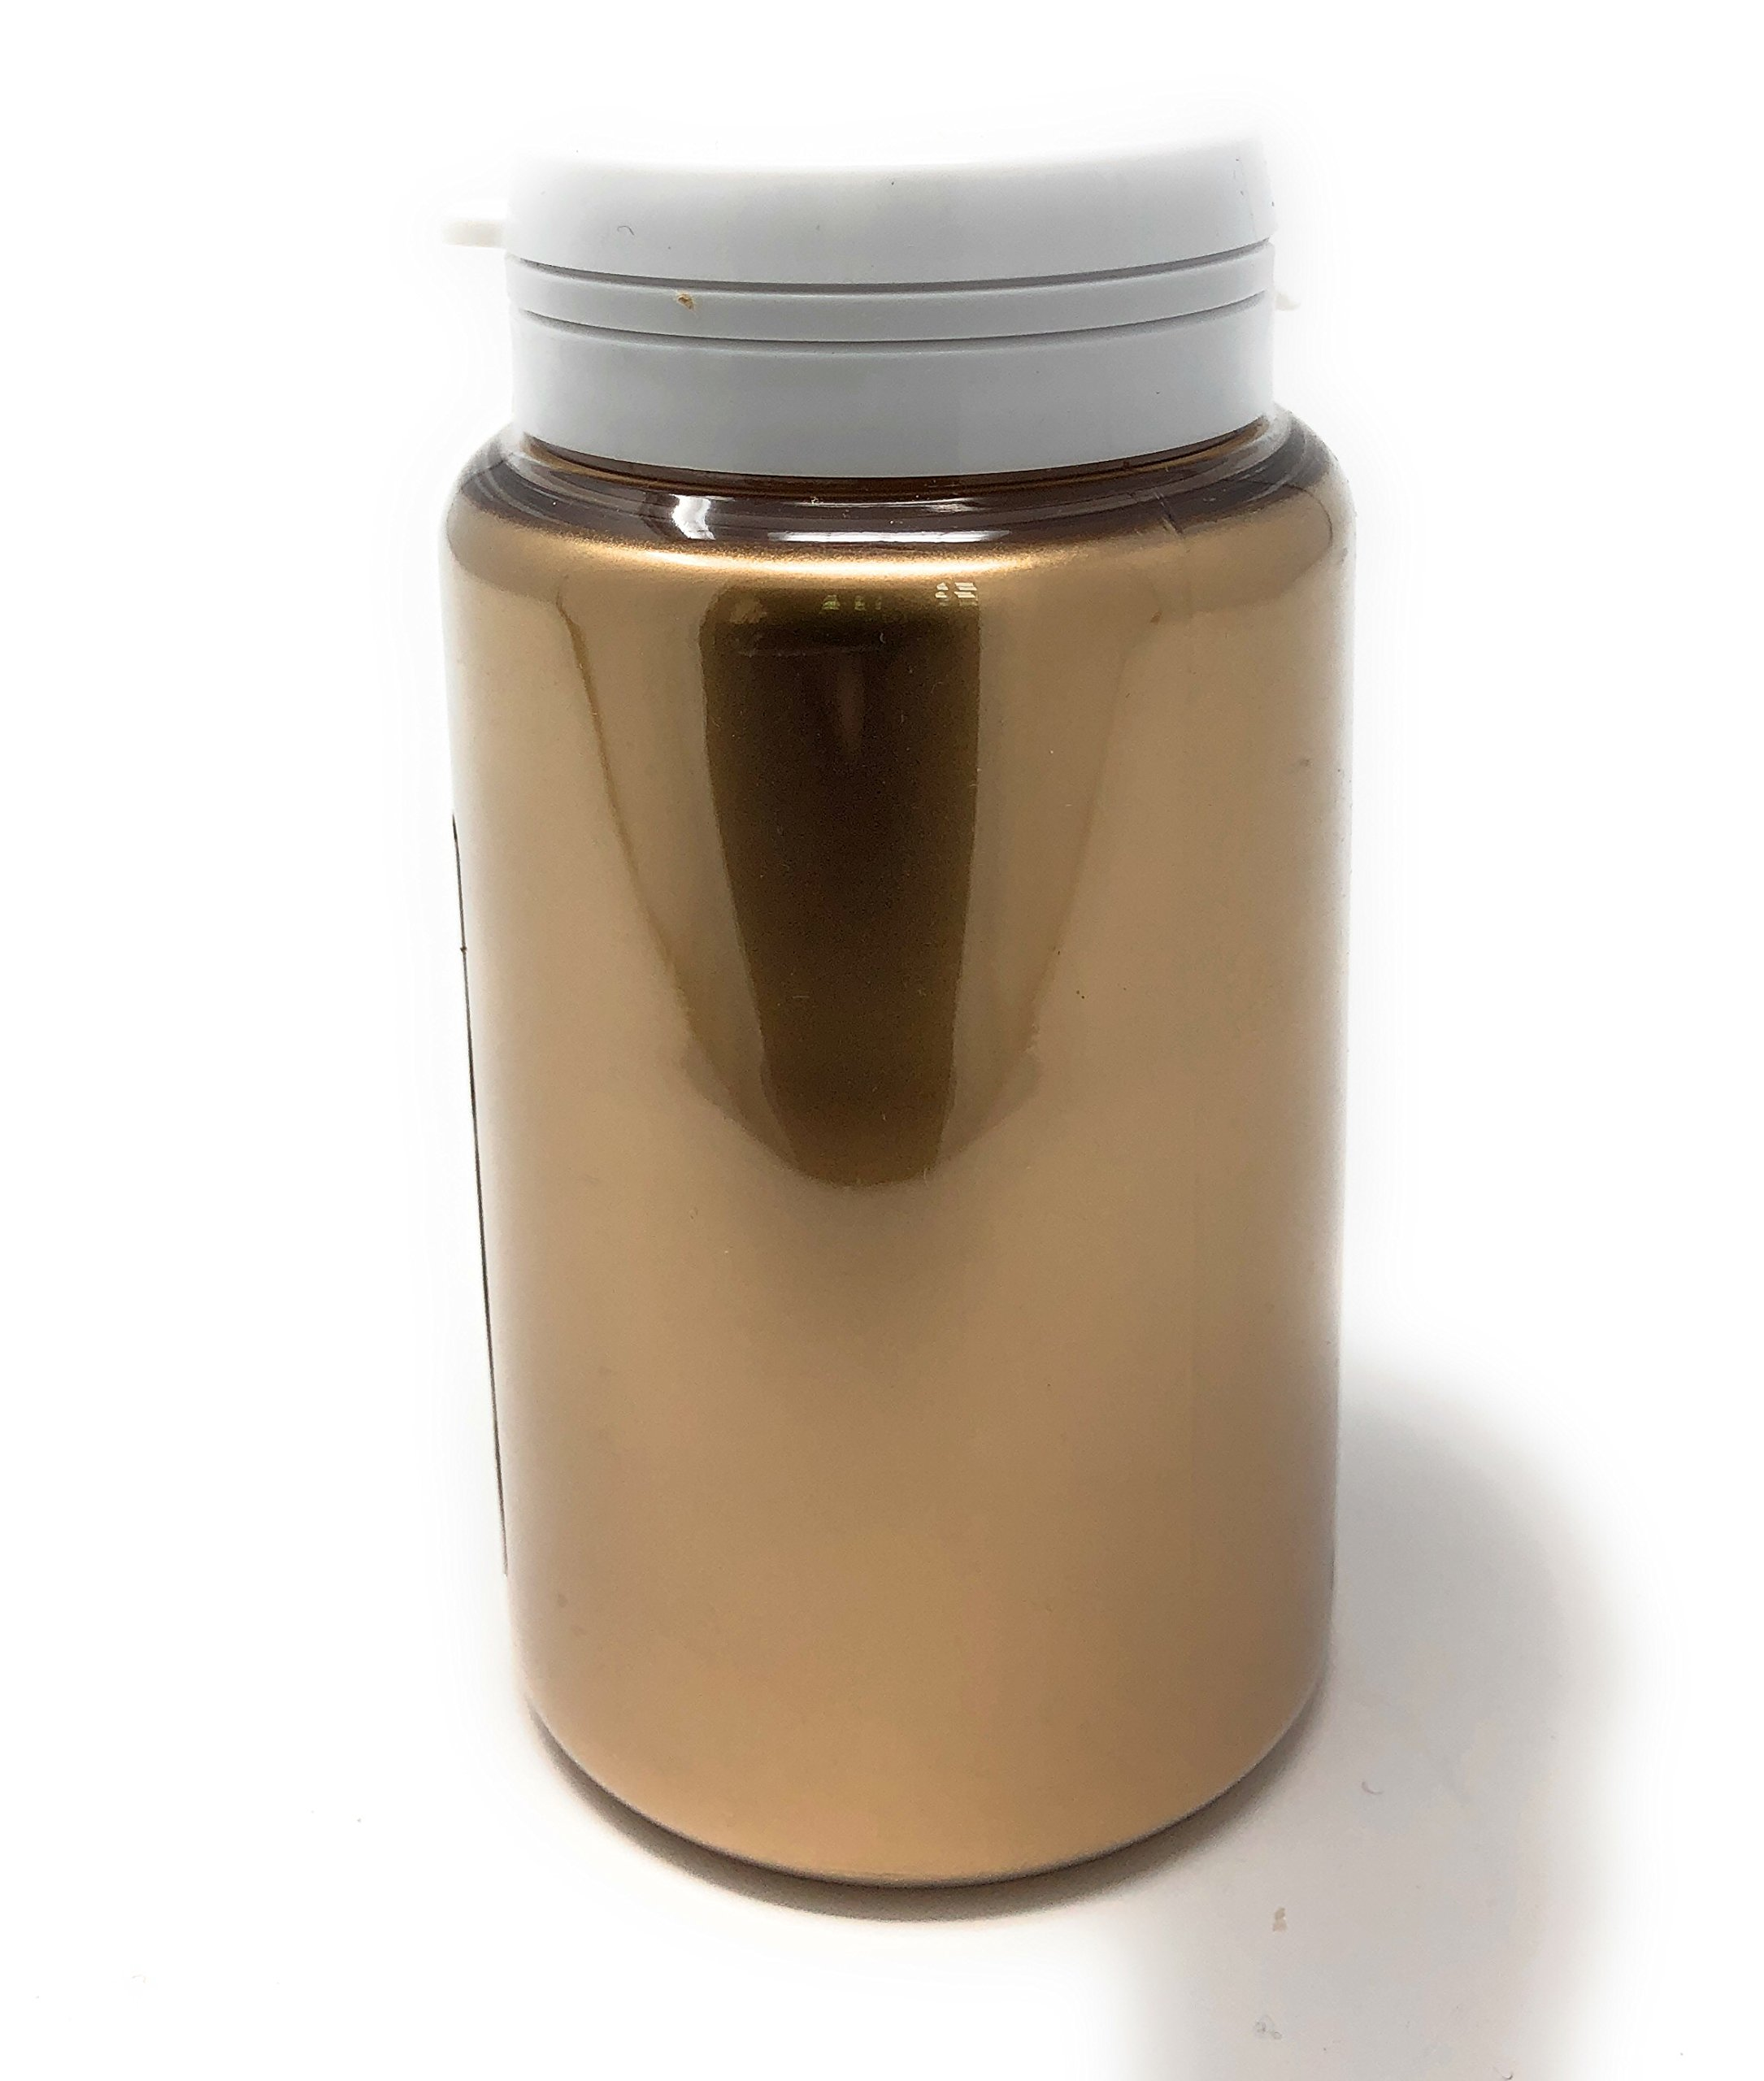 Pastry Ideale Gold Dust 2 Use this inedible metallic powder for decorative pastry work, wedding cakes, showpieces, and al... 2 ounce/56 gram container Size: 2 oz